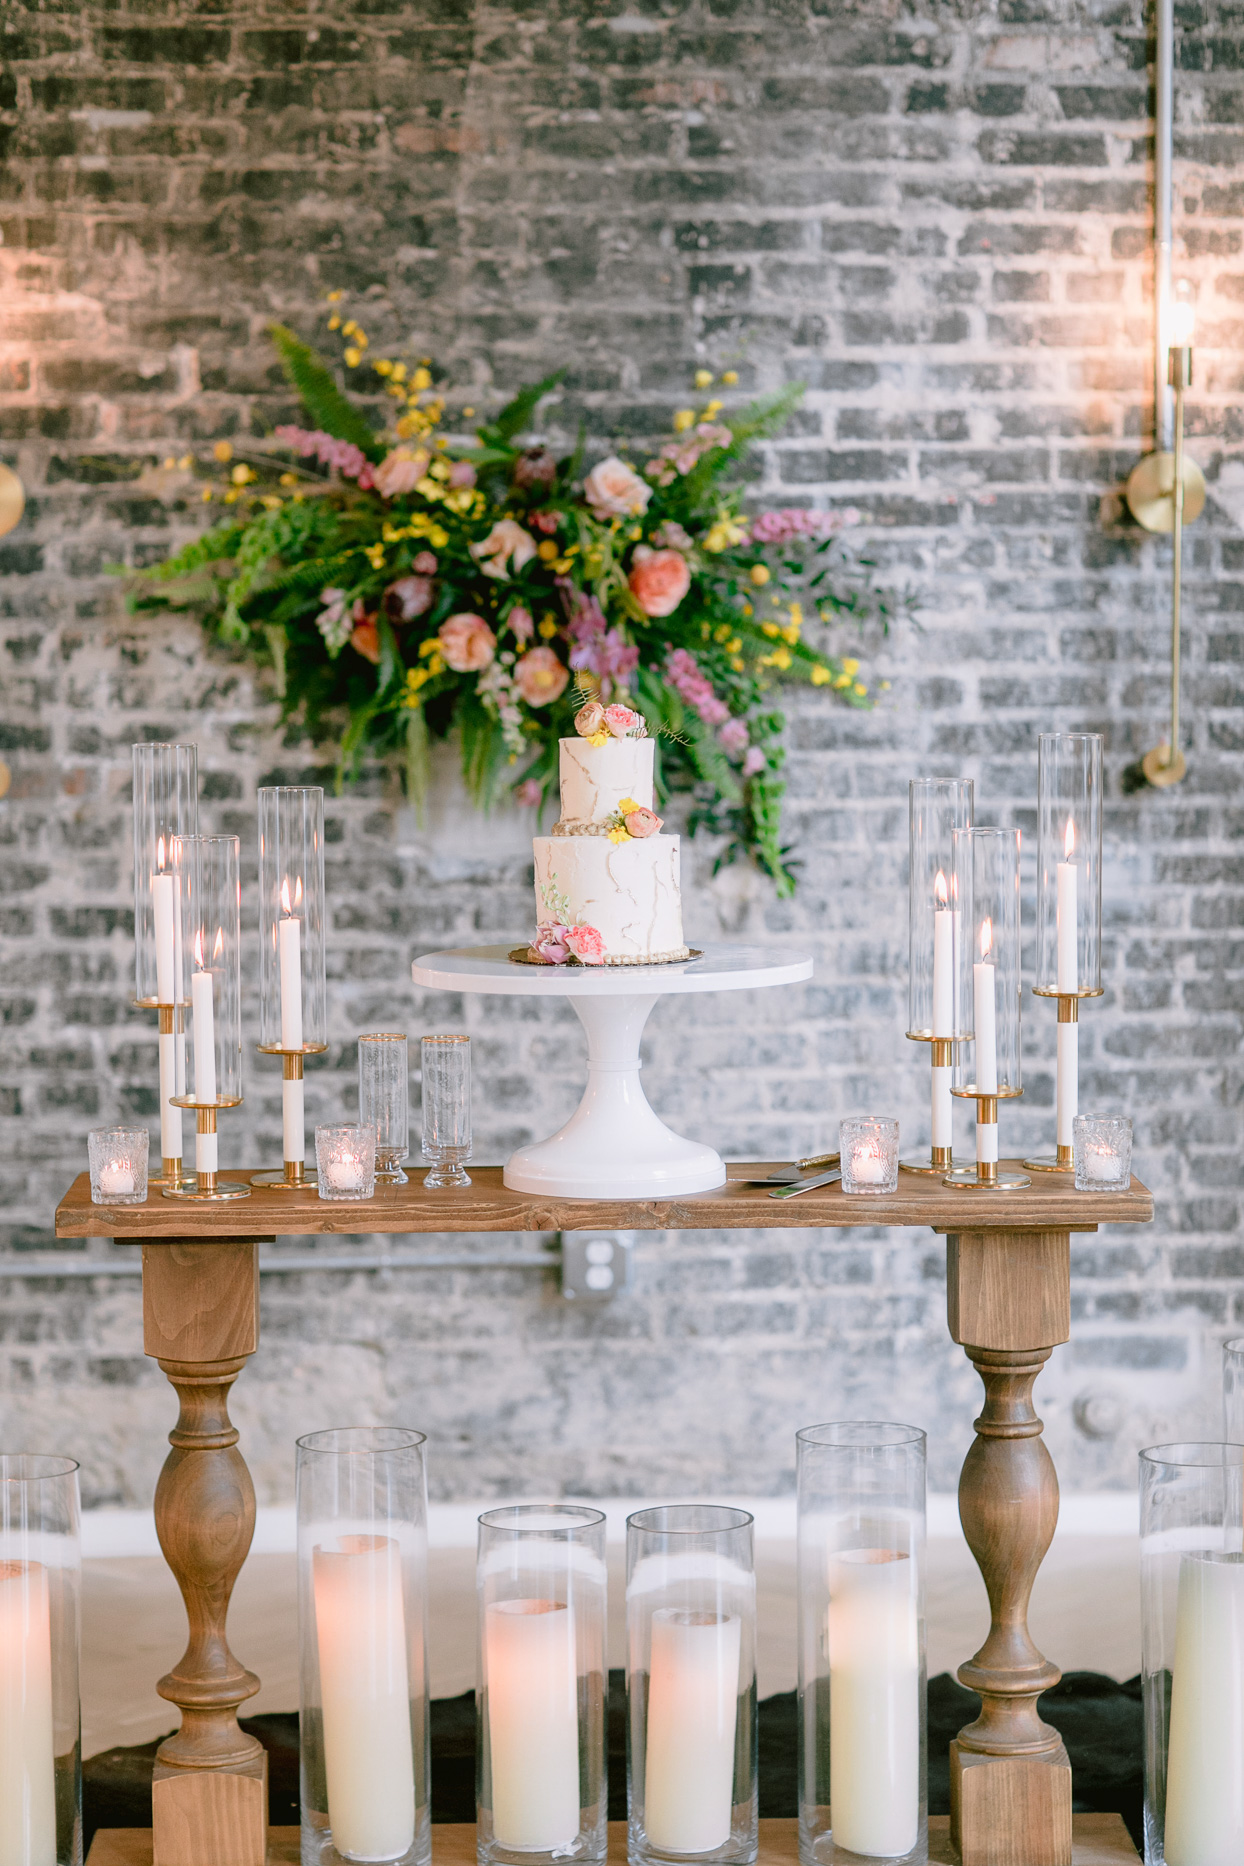 small cake on wooden table with candles and floral decor